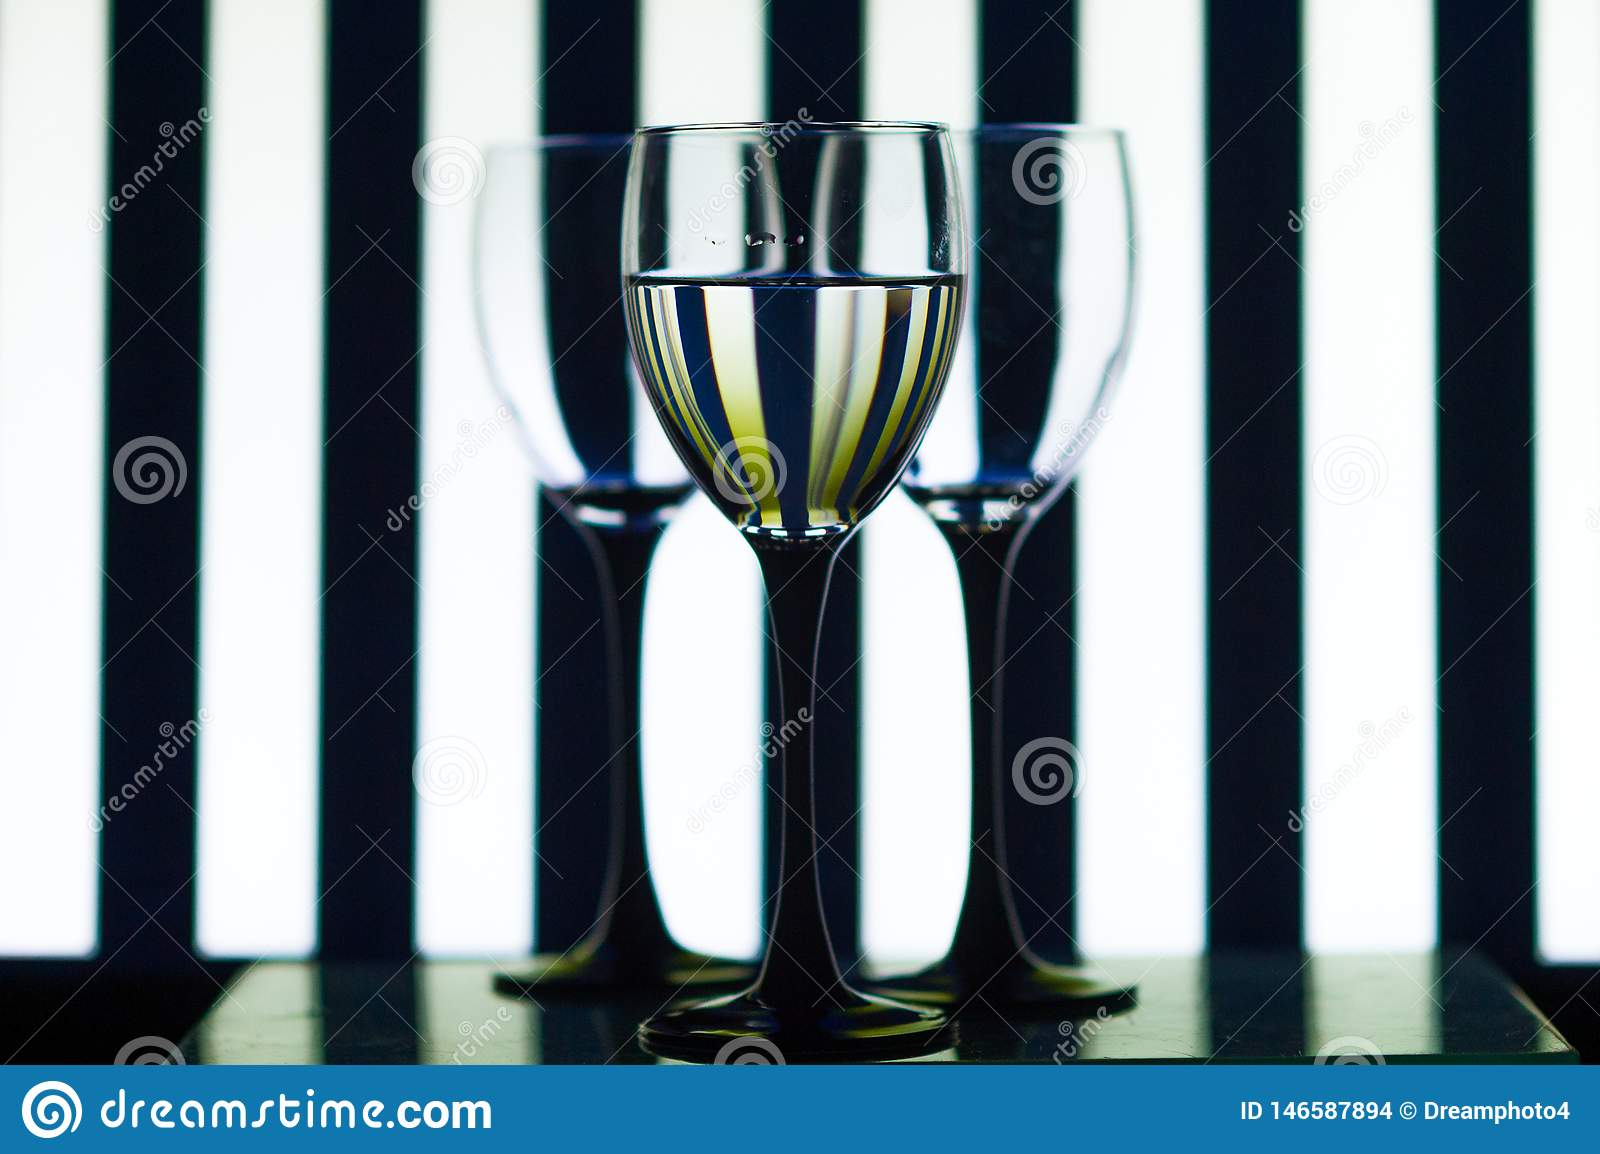 Glass glasses on the background strips